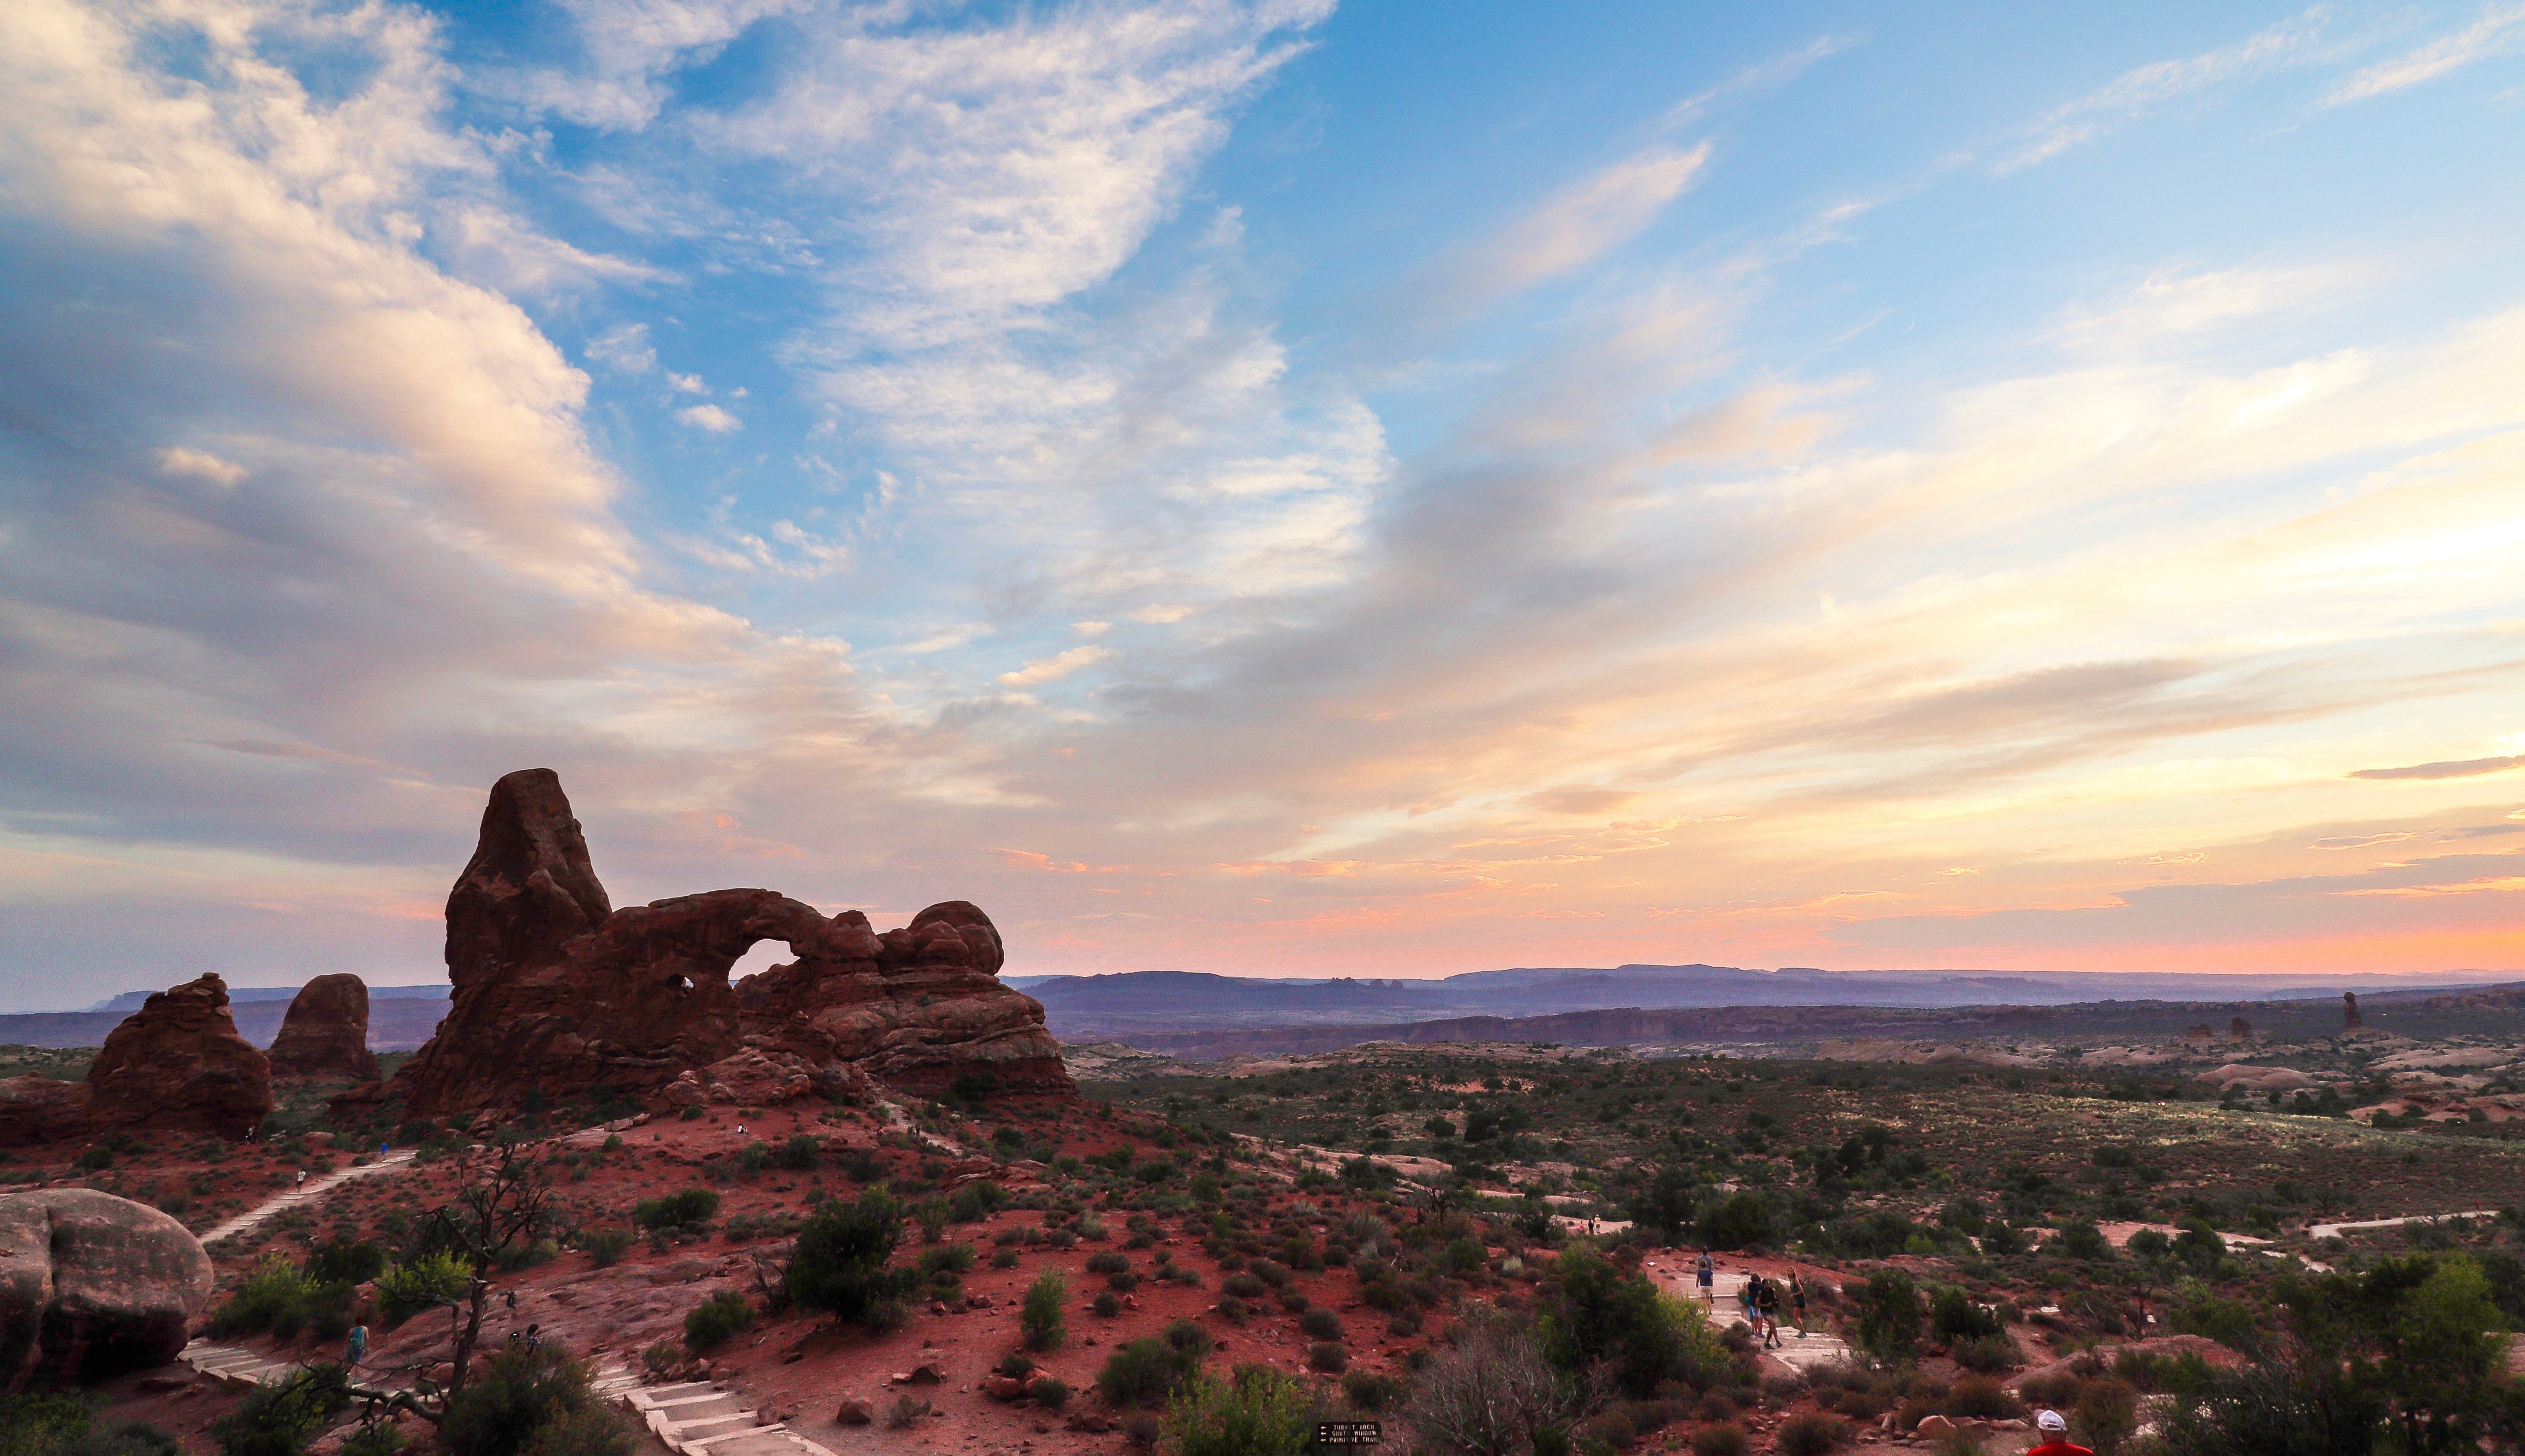 Sunset Photos from Visiting Arches National Park in Utah